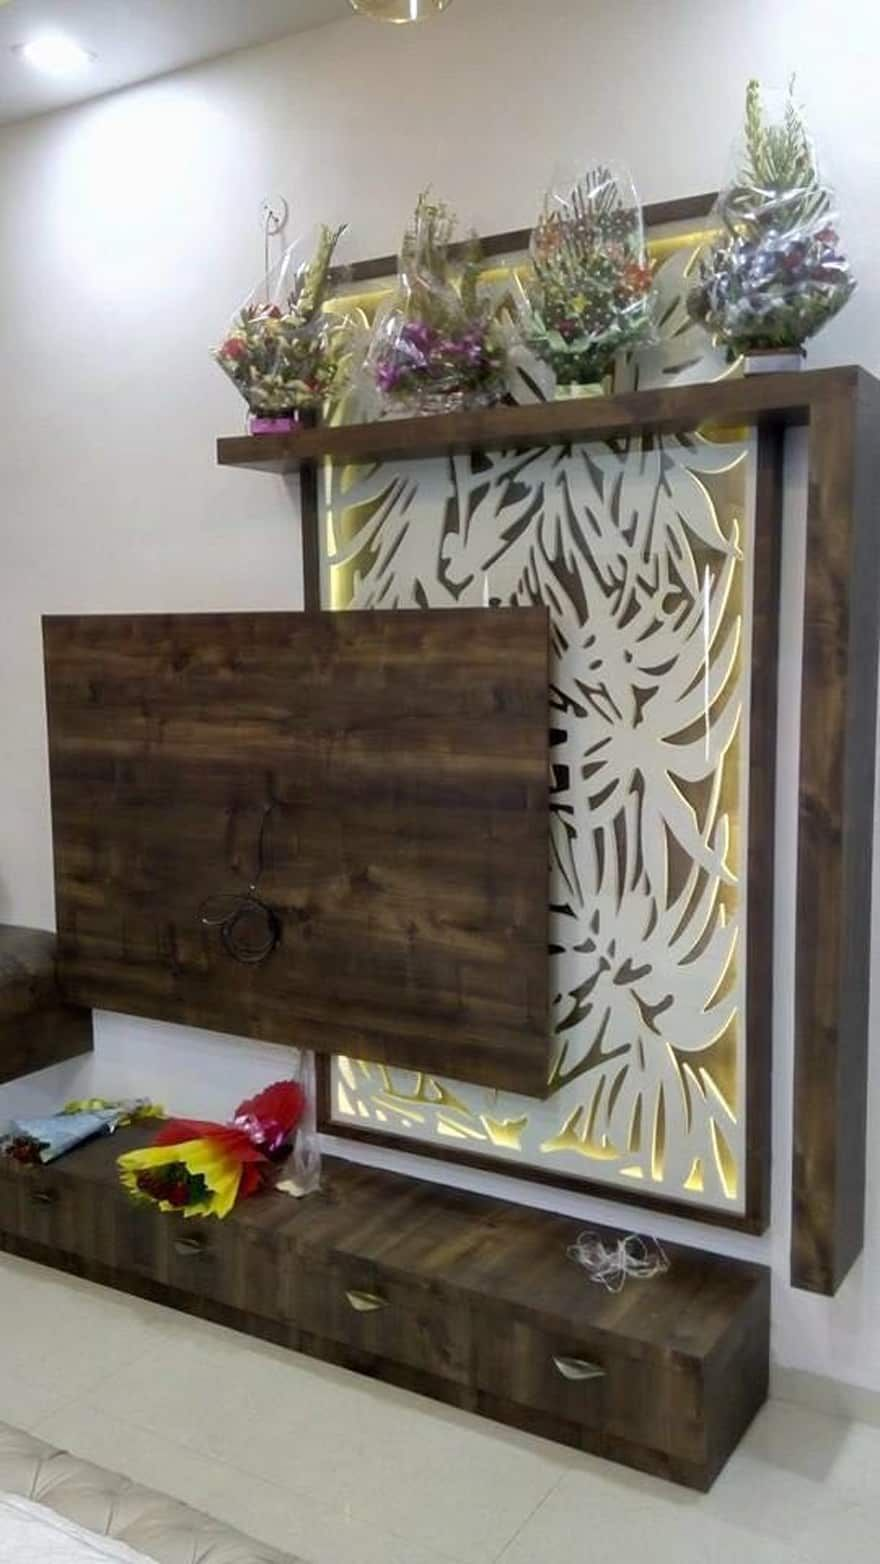 Modern Living Room Lcd Tv Stand Wooden Design Fa18b: Room Interior Design Ideas, Inspiration & Pictures